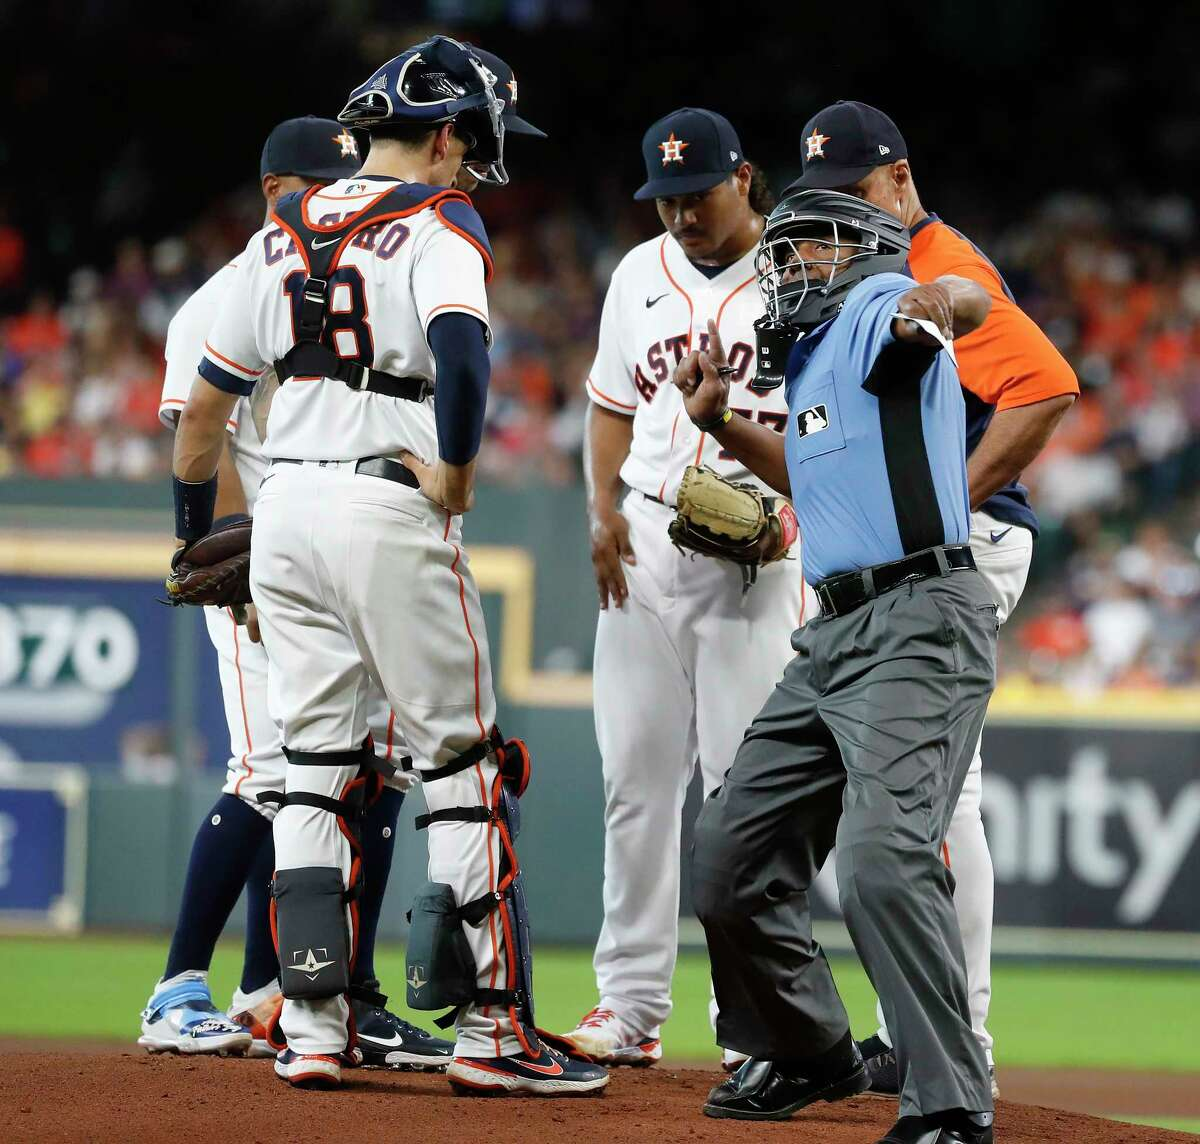 Home plate umpire CB Bucknor ejects Astros pitching coach Brent Strom (right) during a mound visit with starting pitcher Luis Garcia during the first inning Wednesday at Minute Maid Park.